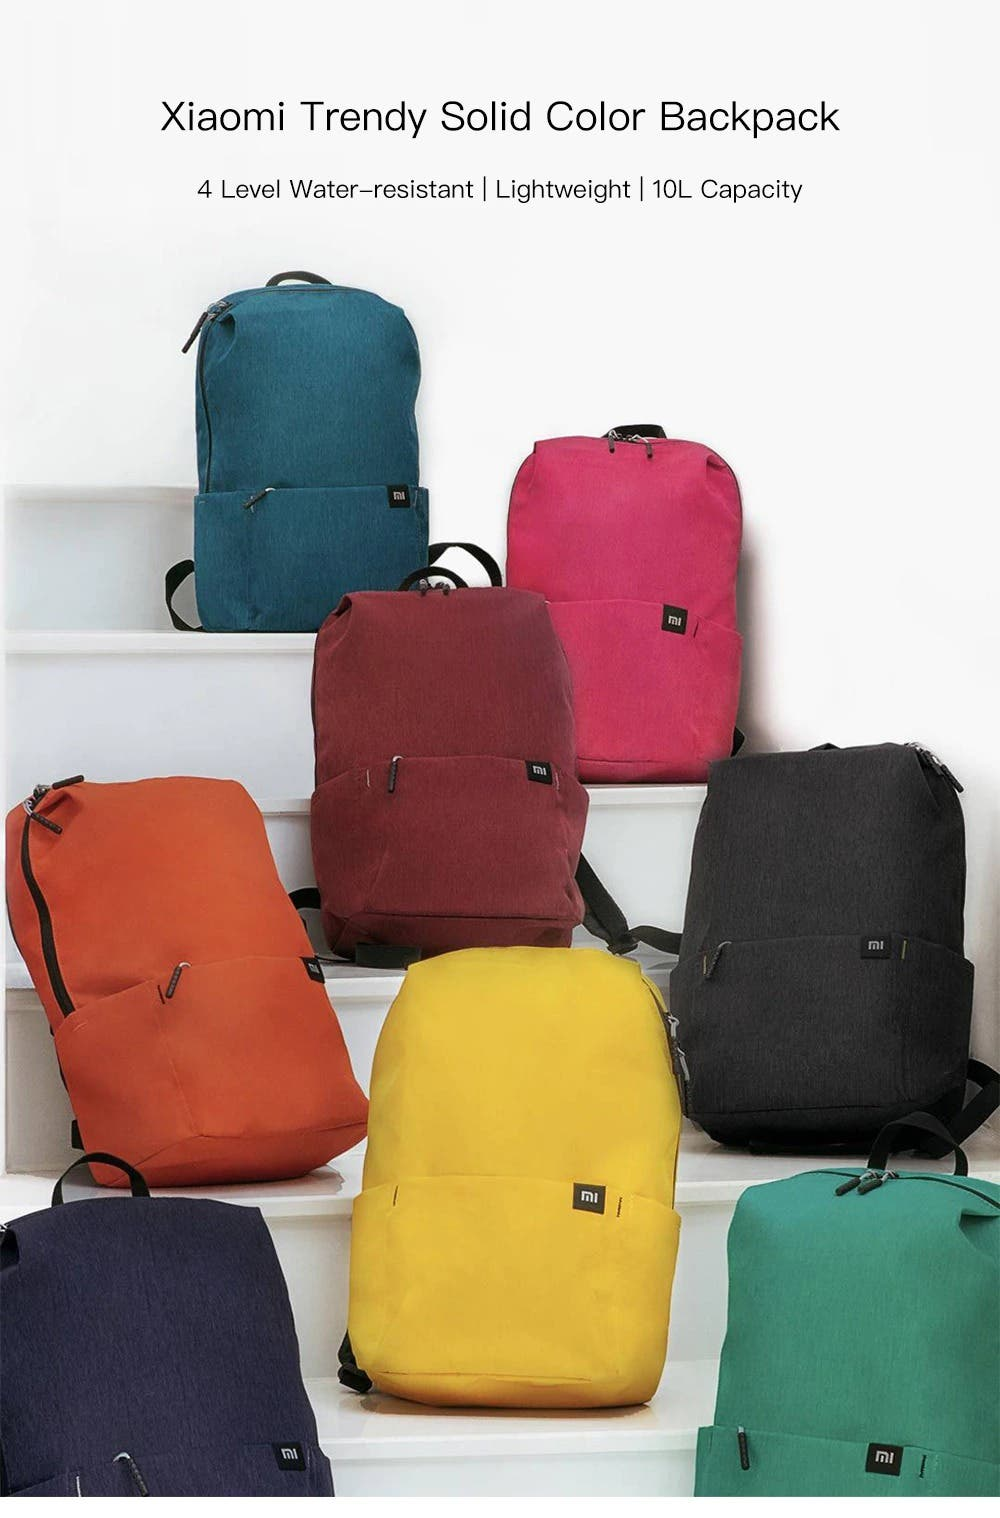 Xiaomi Trendy Solid Color Backpack